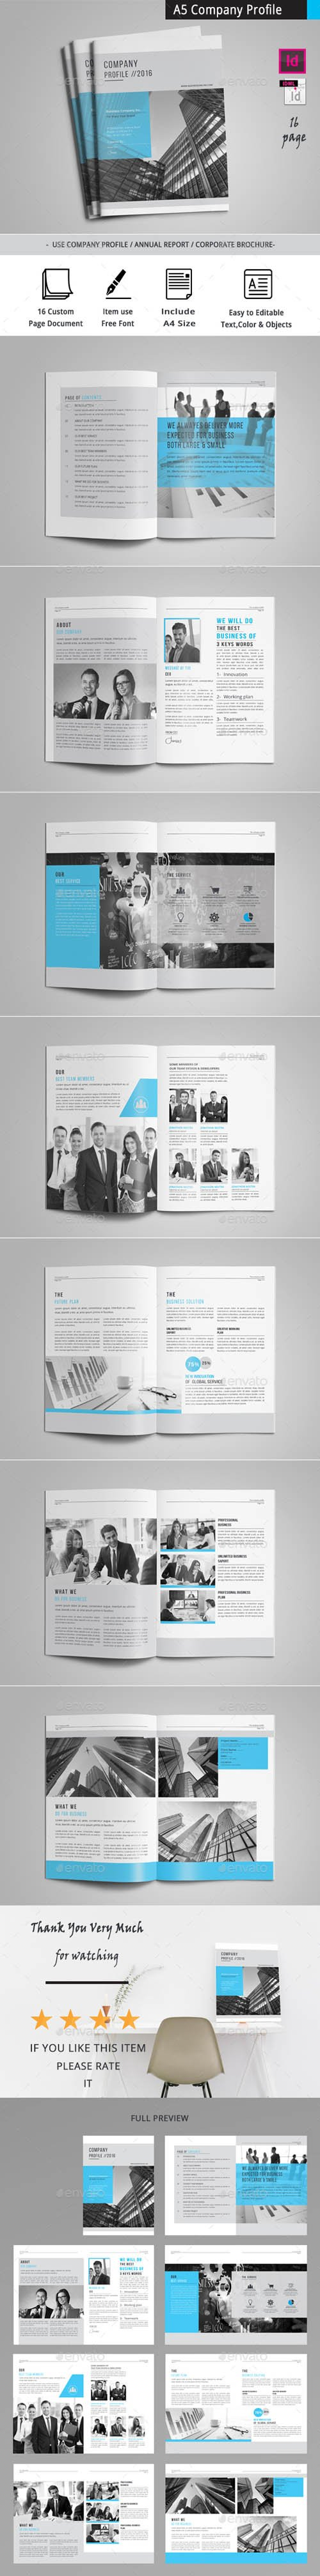 Graphicriver - A5 Company Profile 20236102